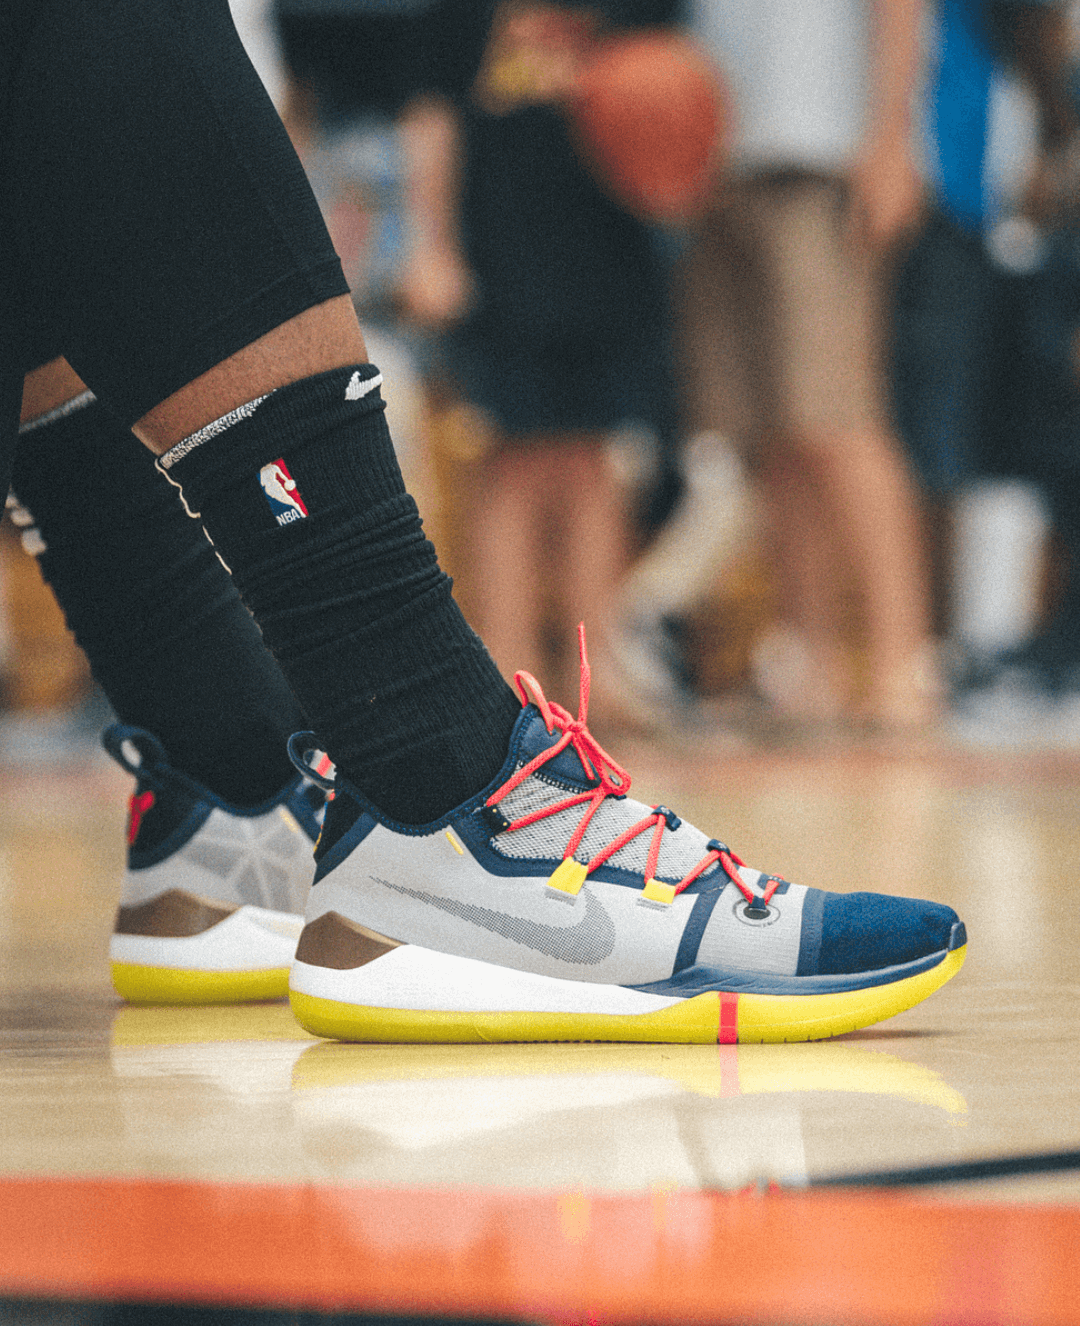 835f769e538e1 Today at the Drew League, DeRozan was seen wearing a pair of brand new Kobe  sneakers which is rumored to be the latest Kobe AD model.